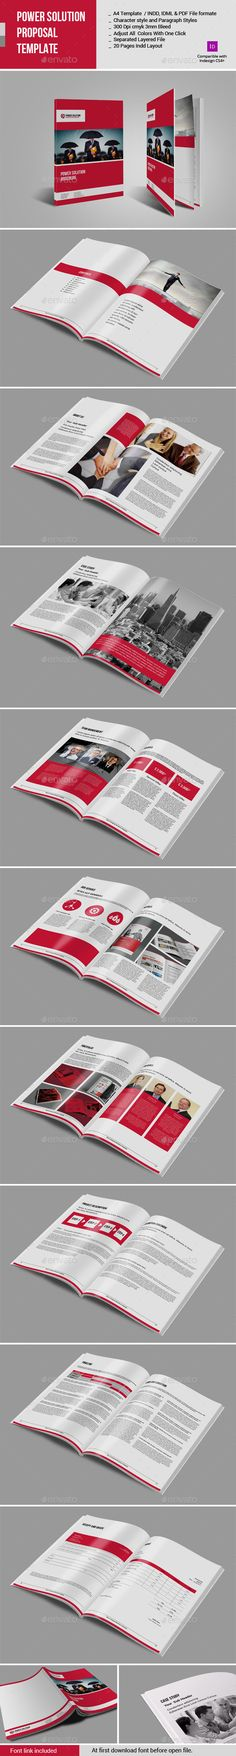 Corporate Project Proposal Brochure  Project Proposal Proposals